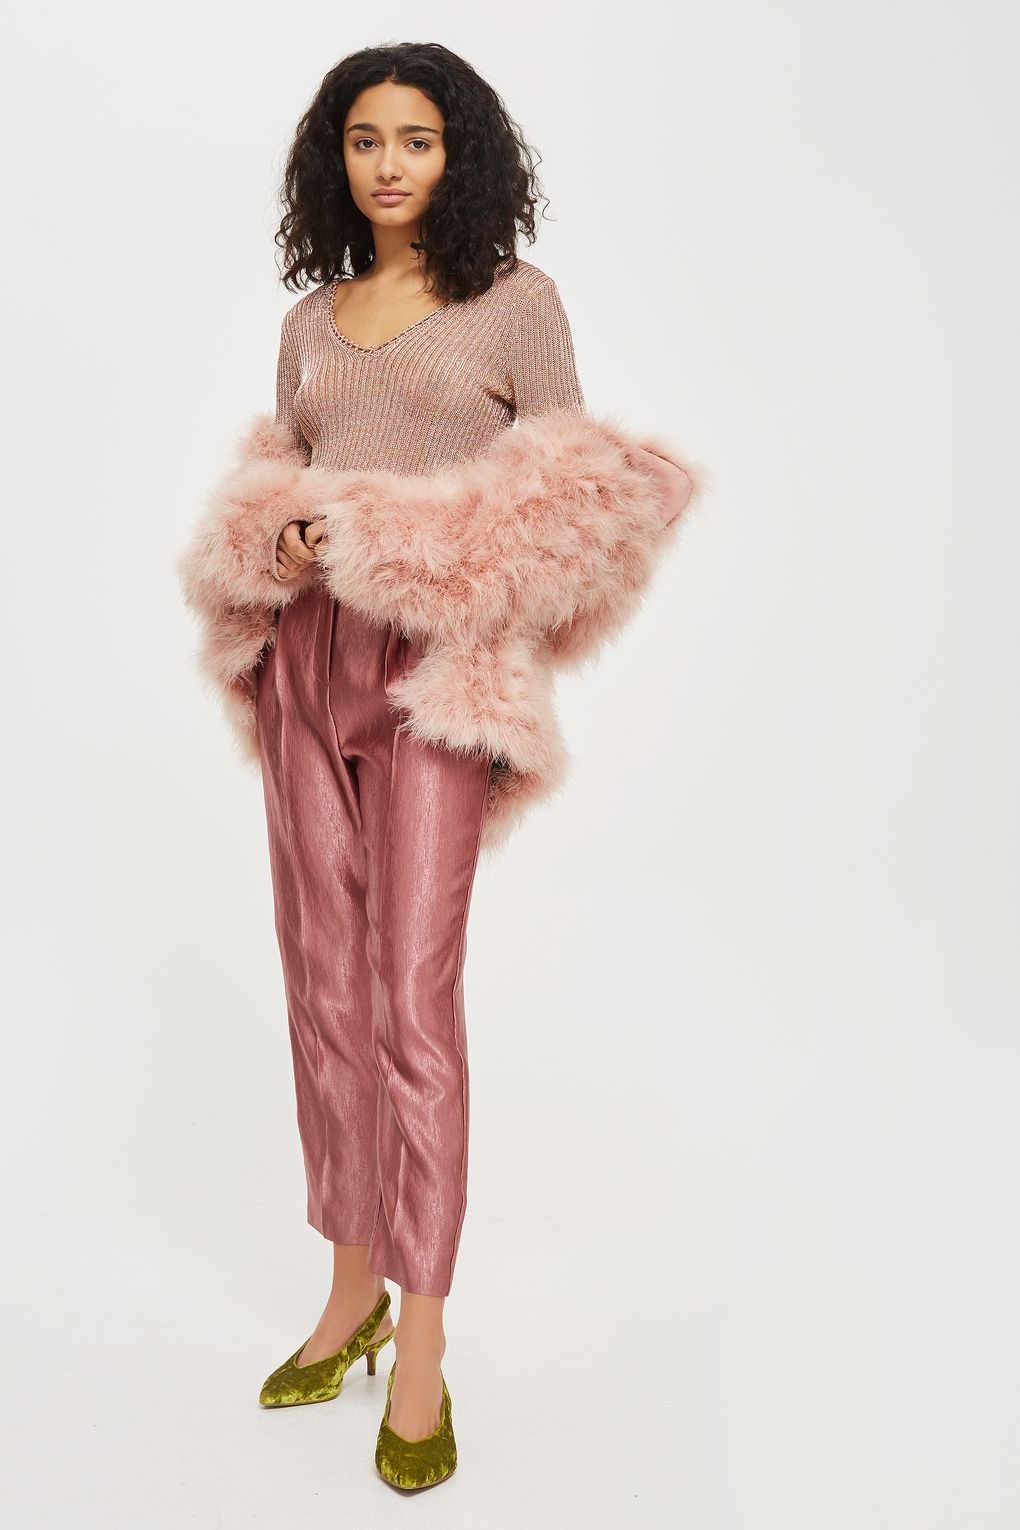 TOPSHOP METALLIC PINK TOP.jpg